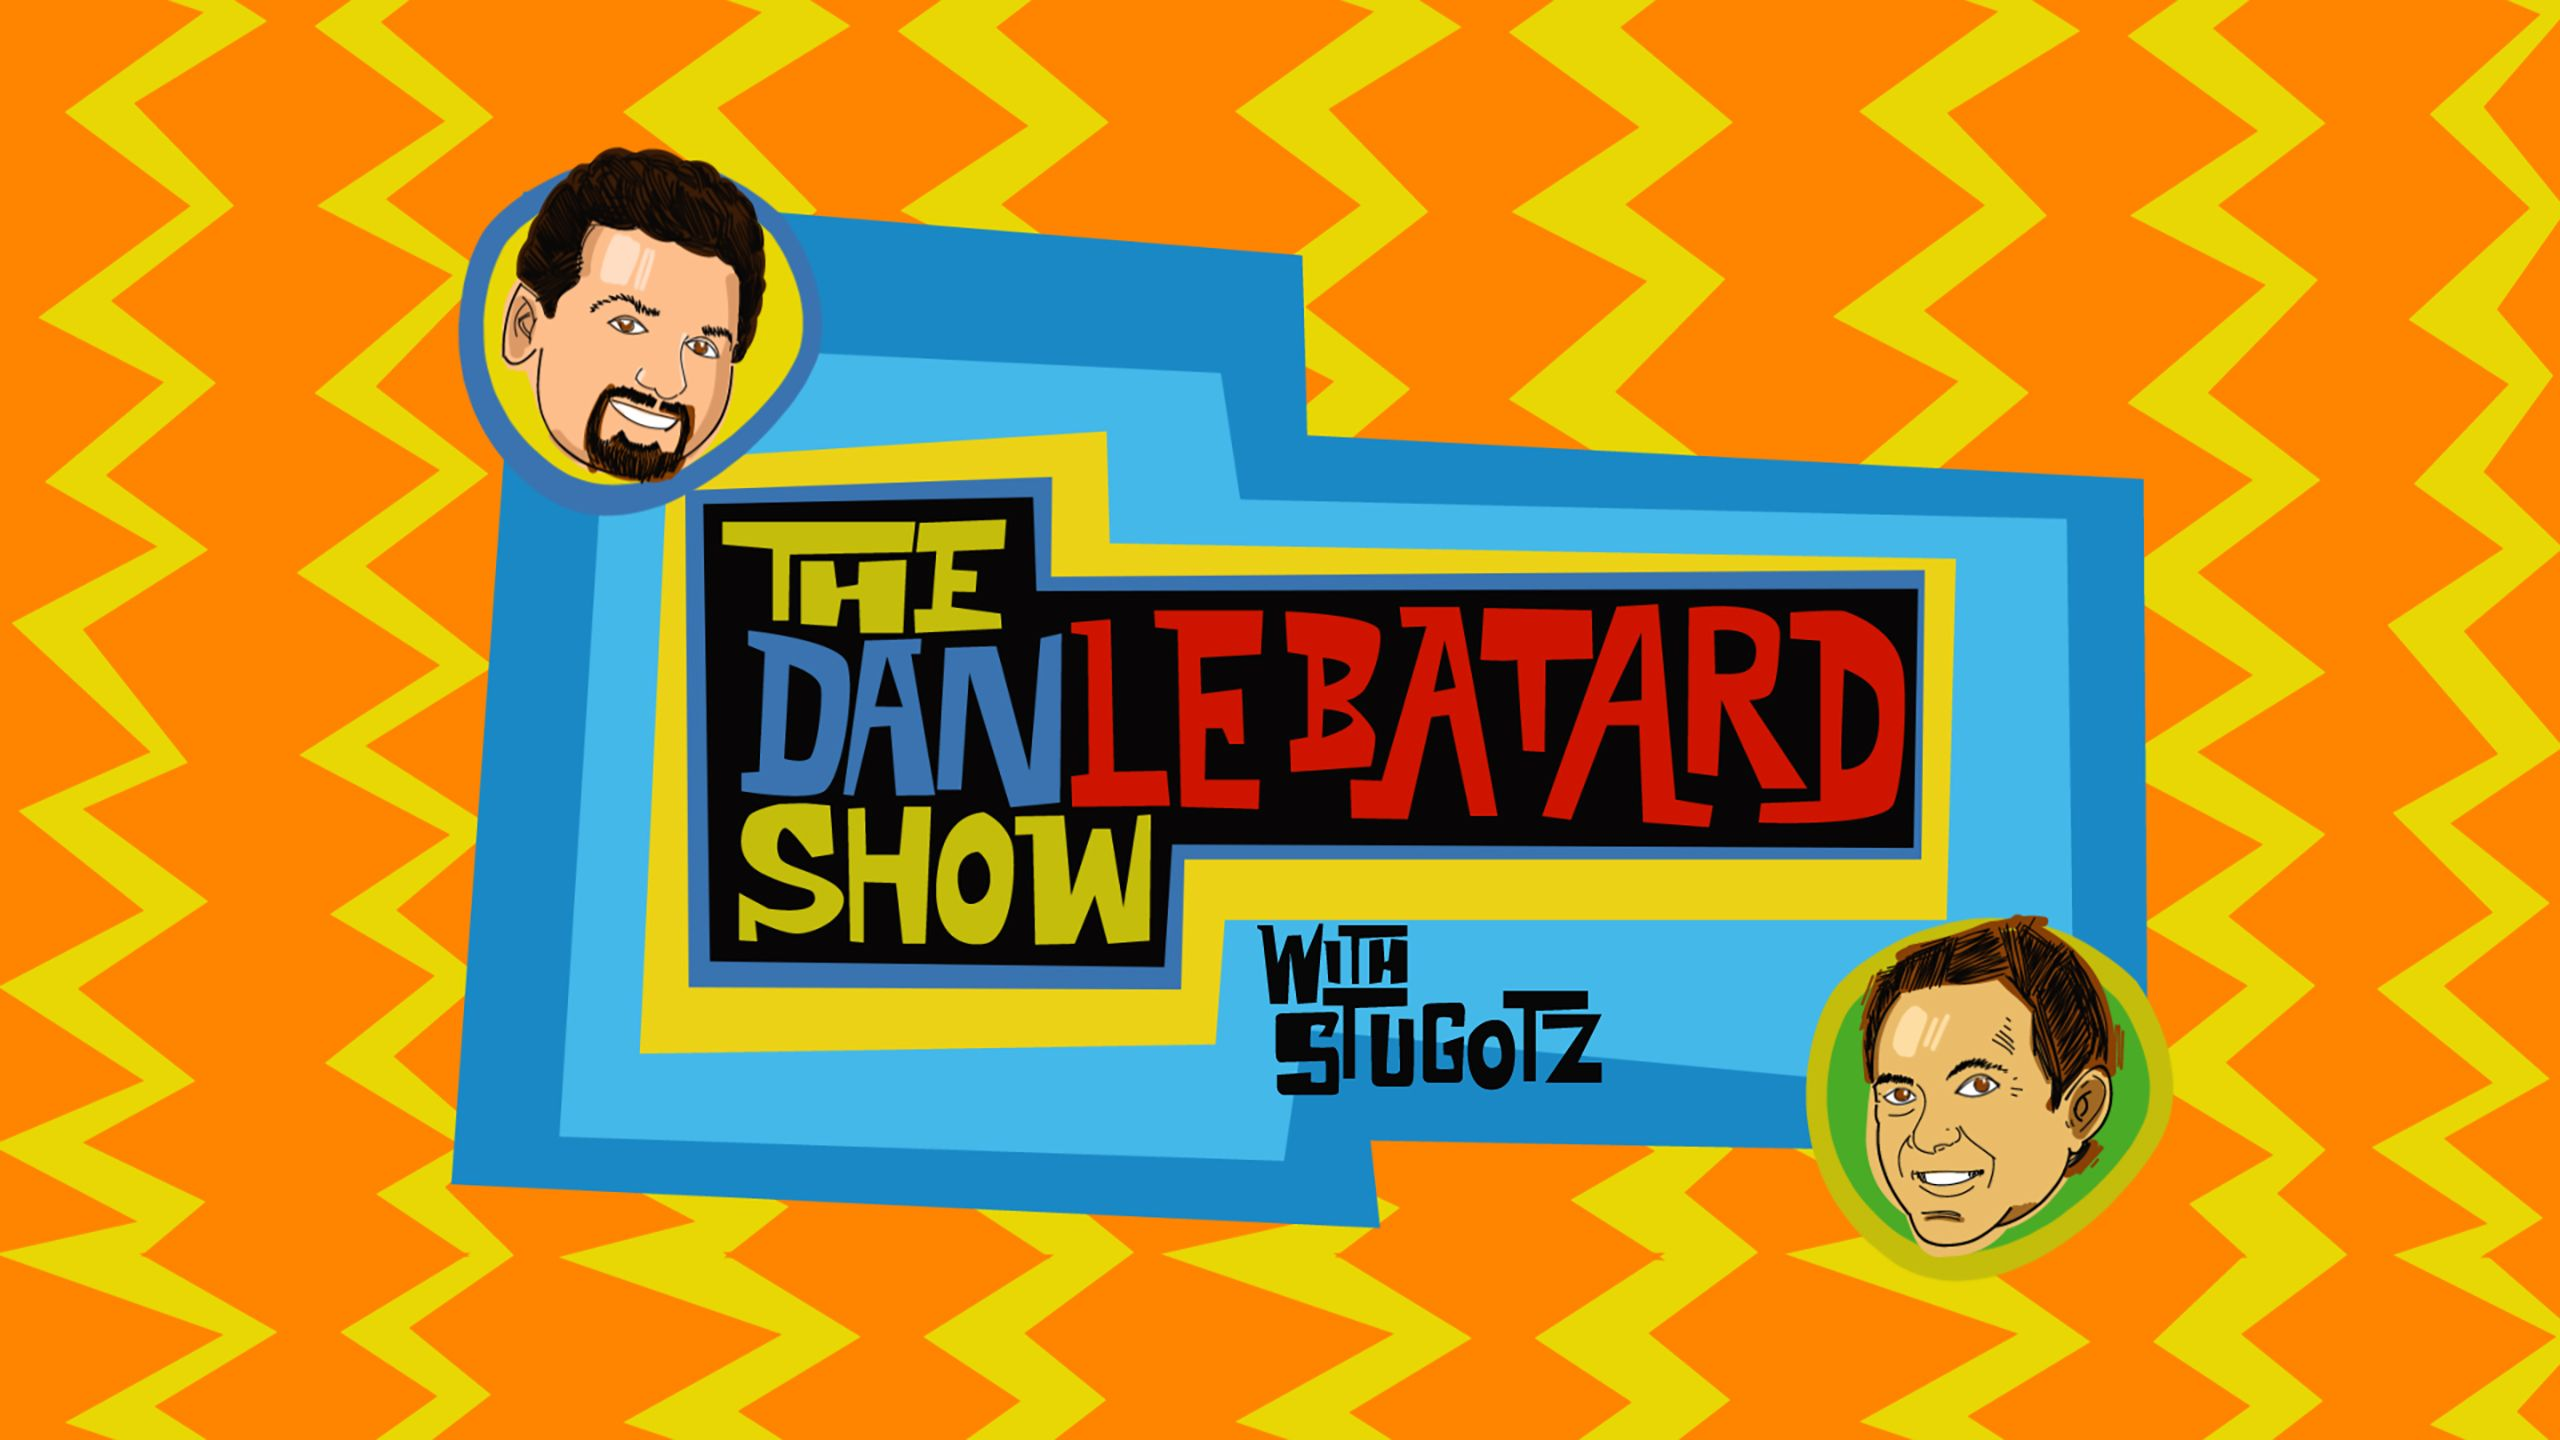 Fri, 3/23 - The Dan Le Batard Show with Stugotz Presented by Progressive